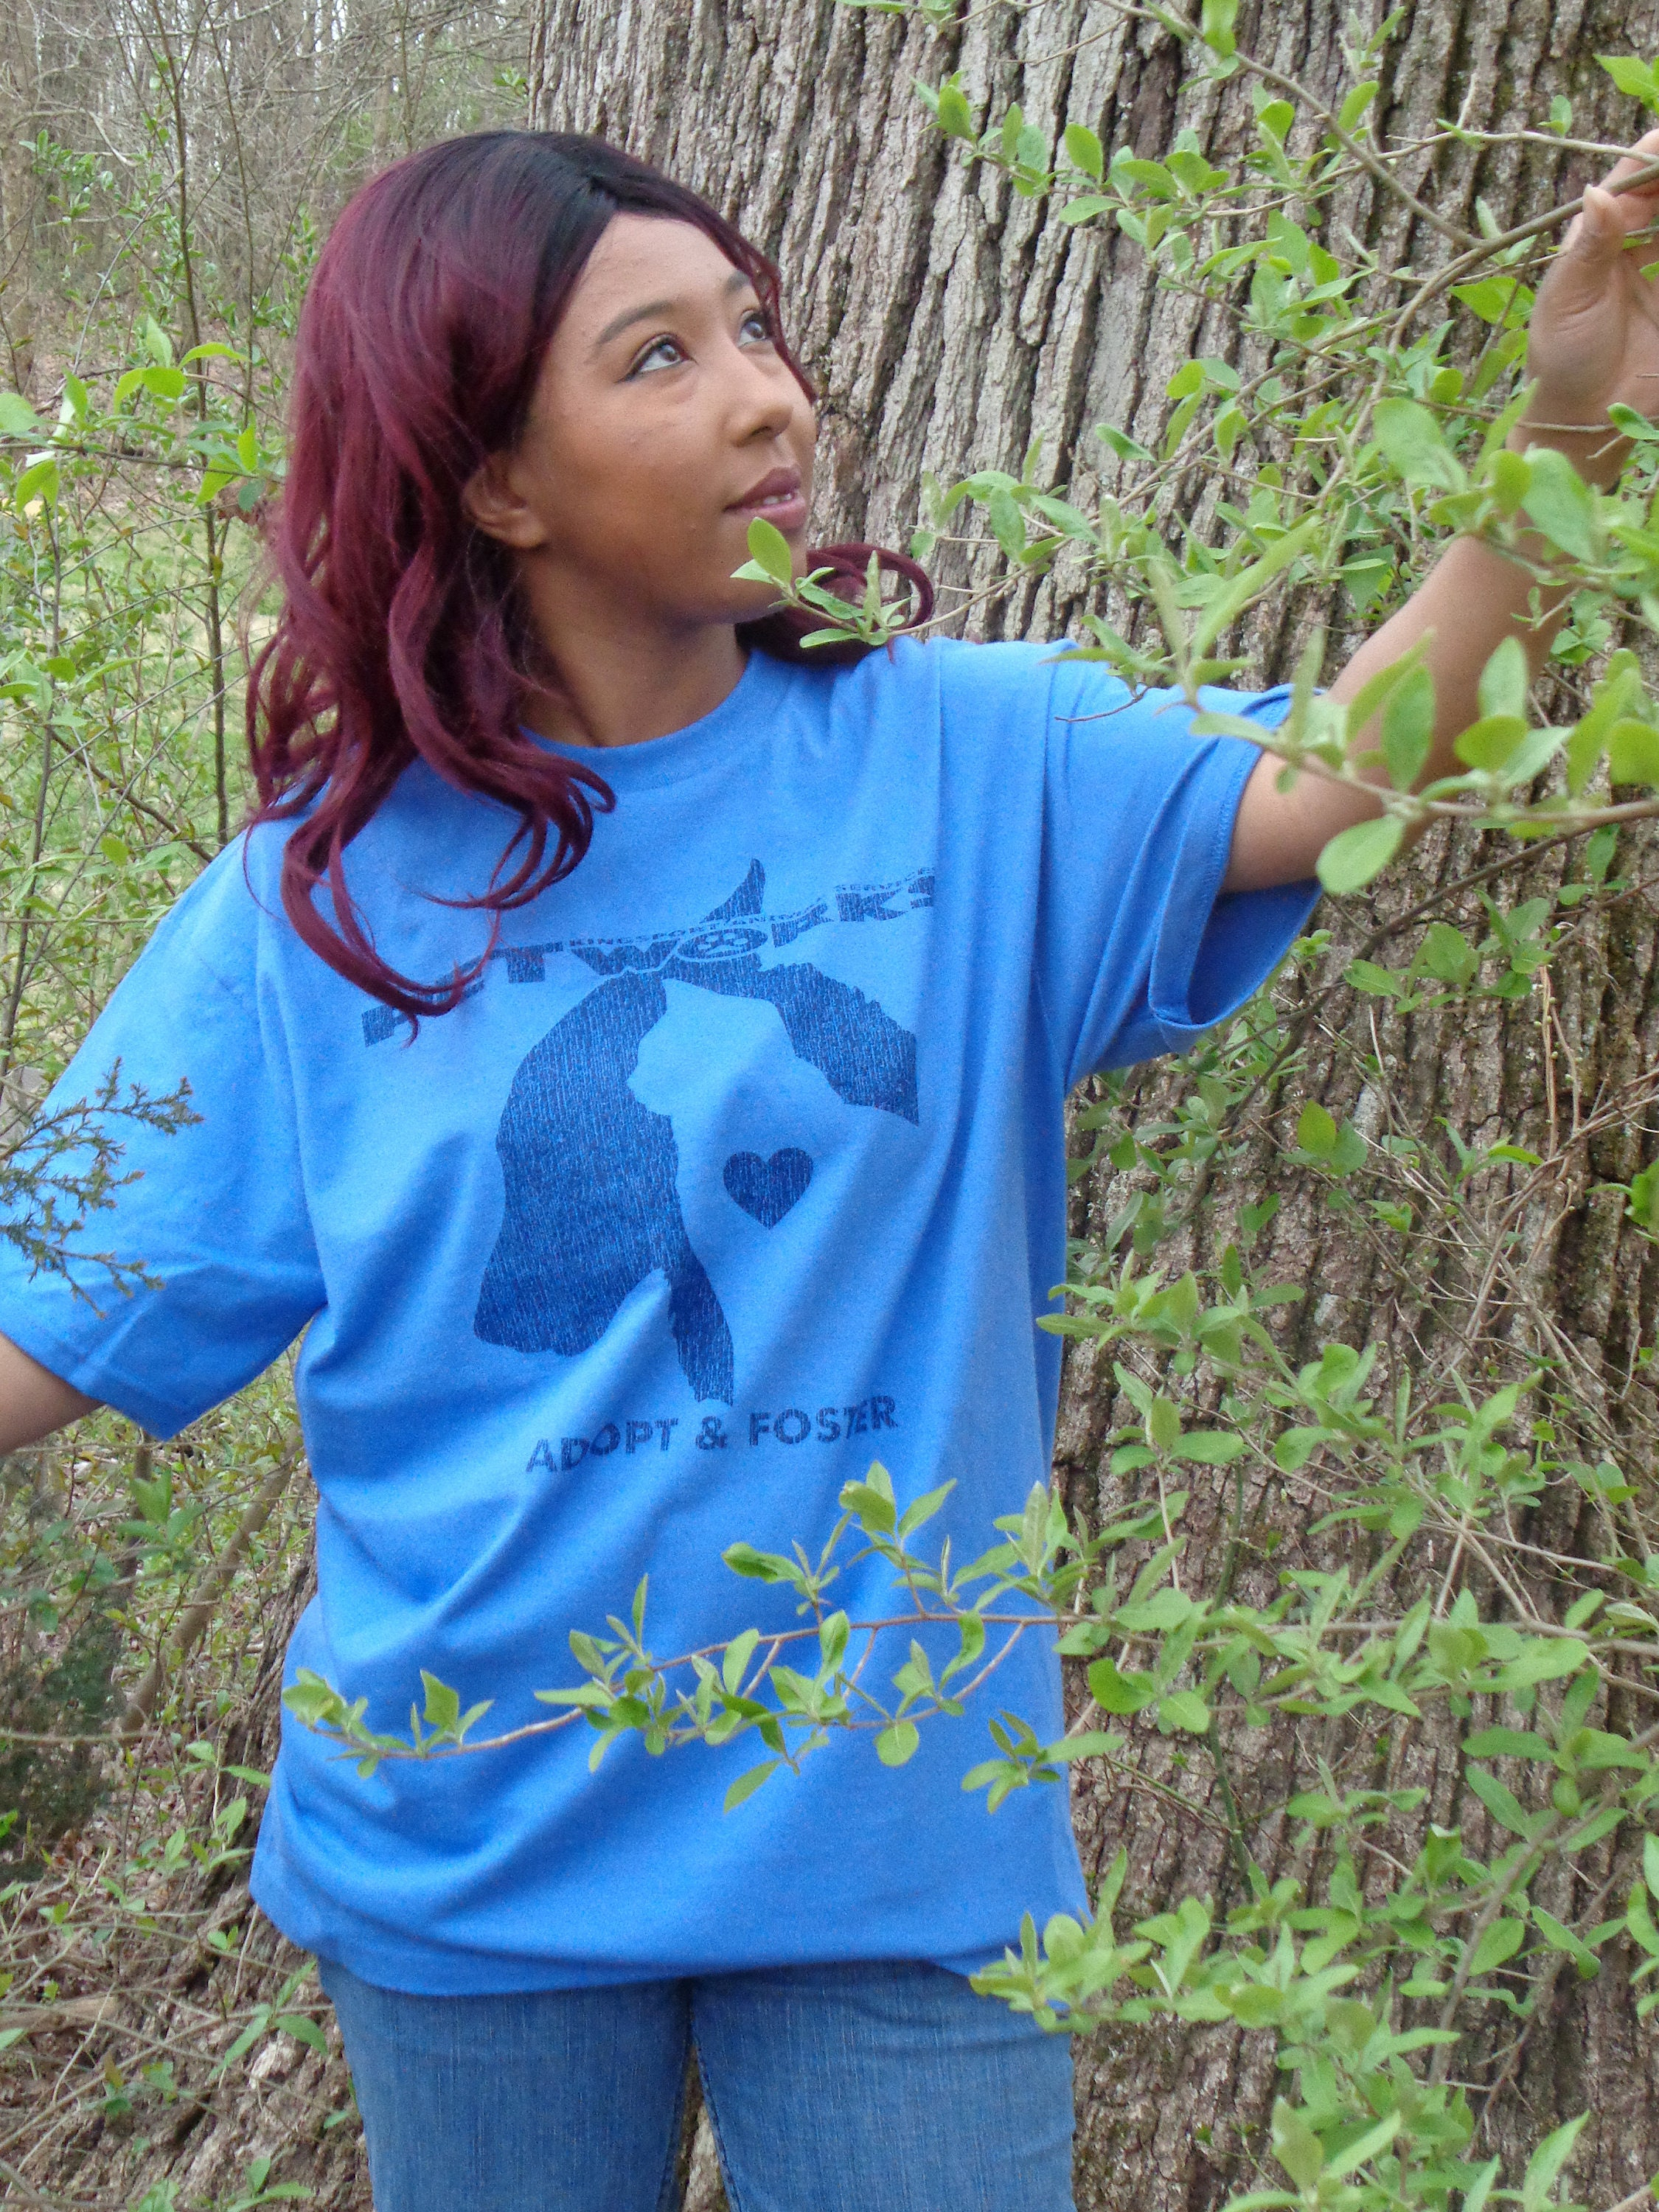 Petworks fundrasier shirt in flo blue!